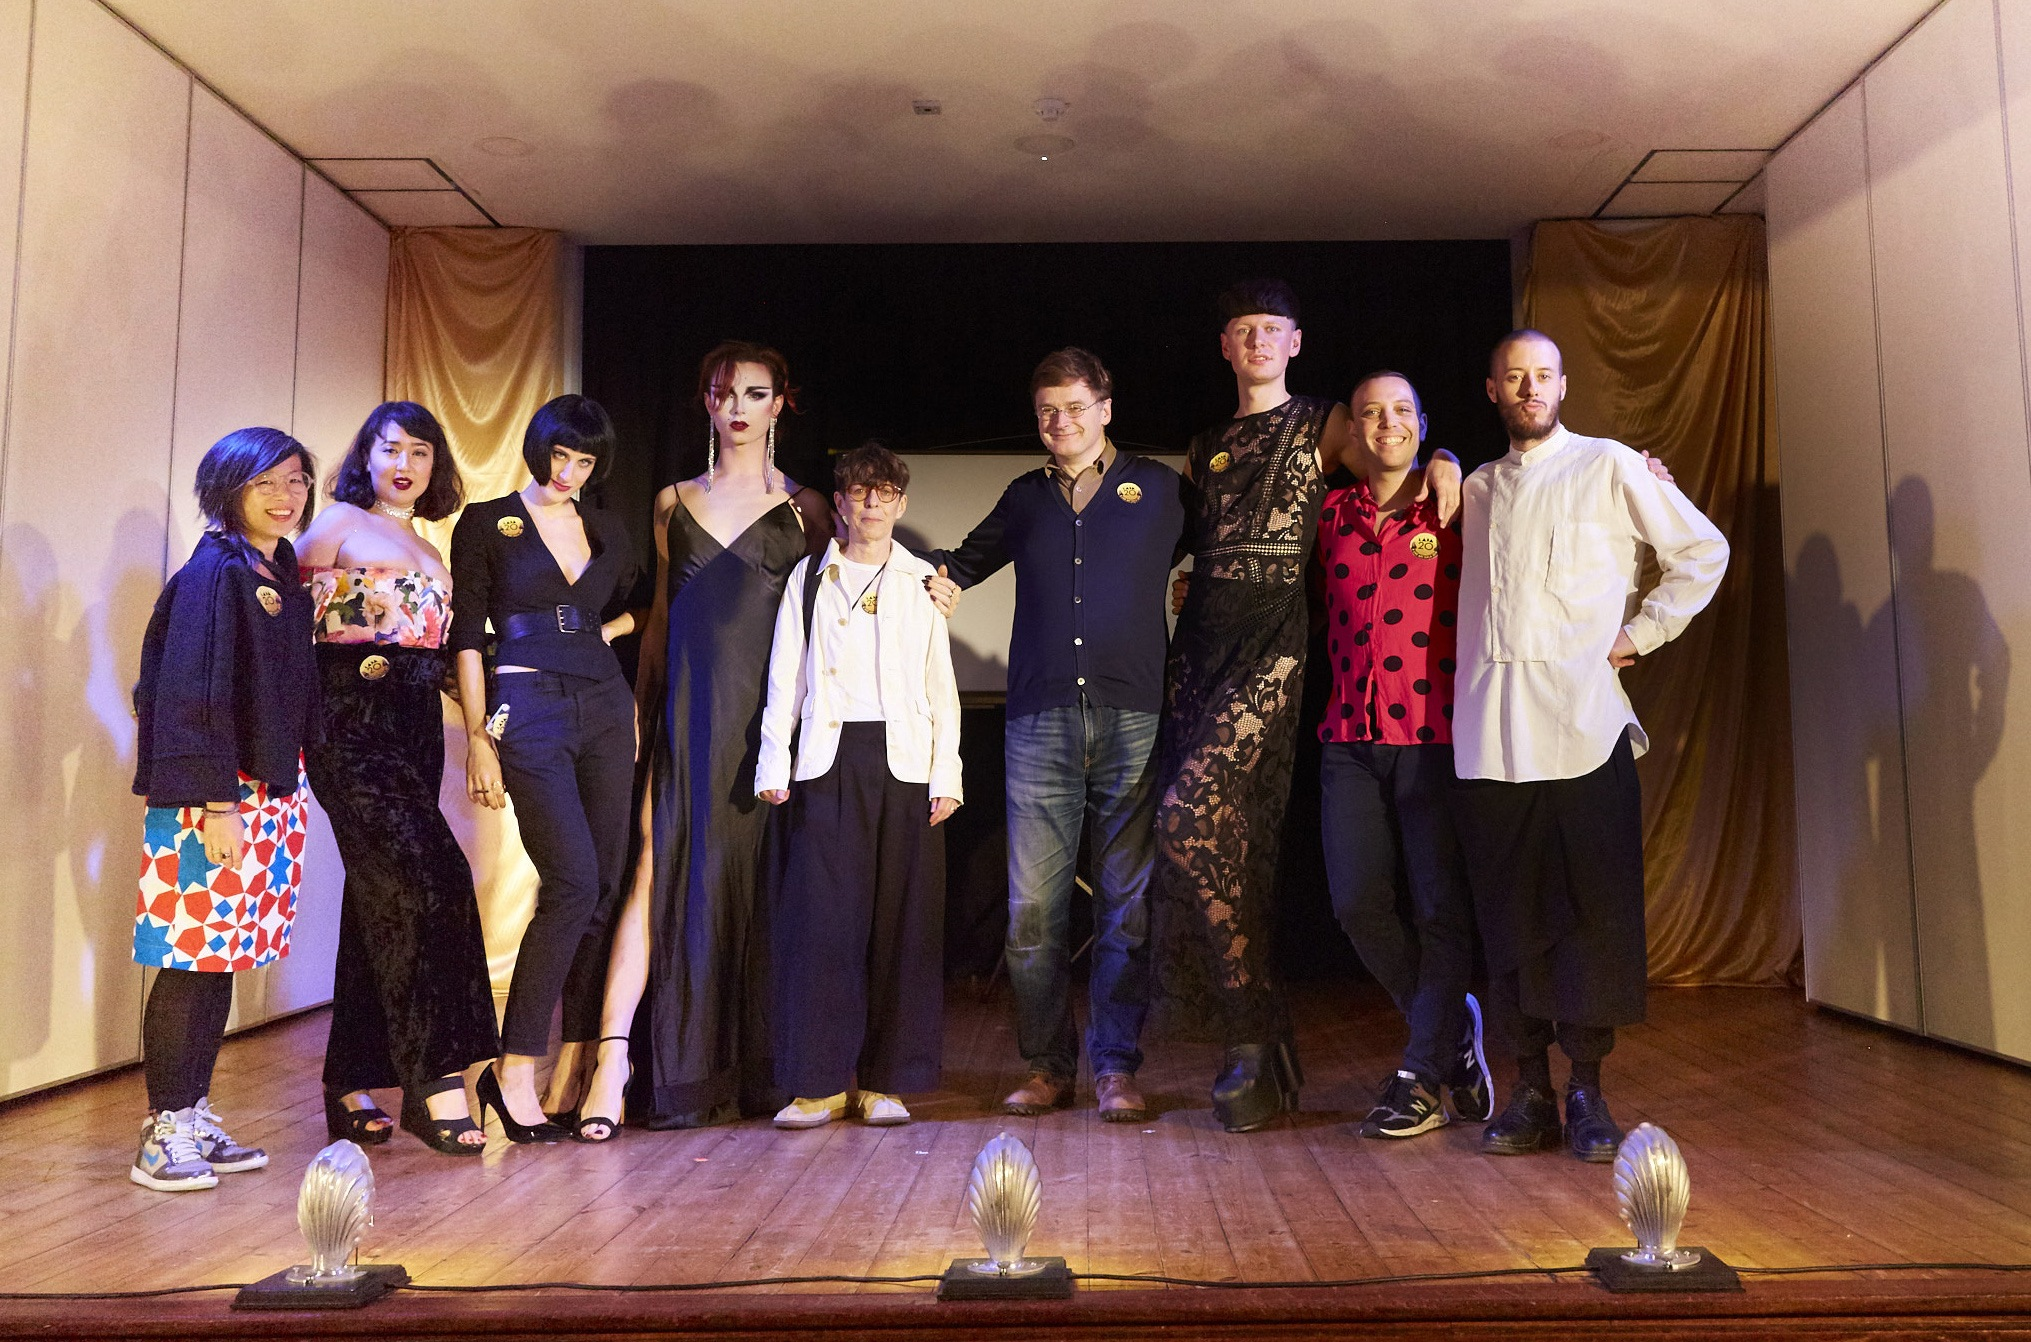 LADA's staff pictured onstage at the 20th Anniversary Gala